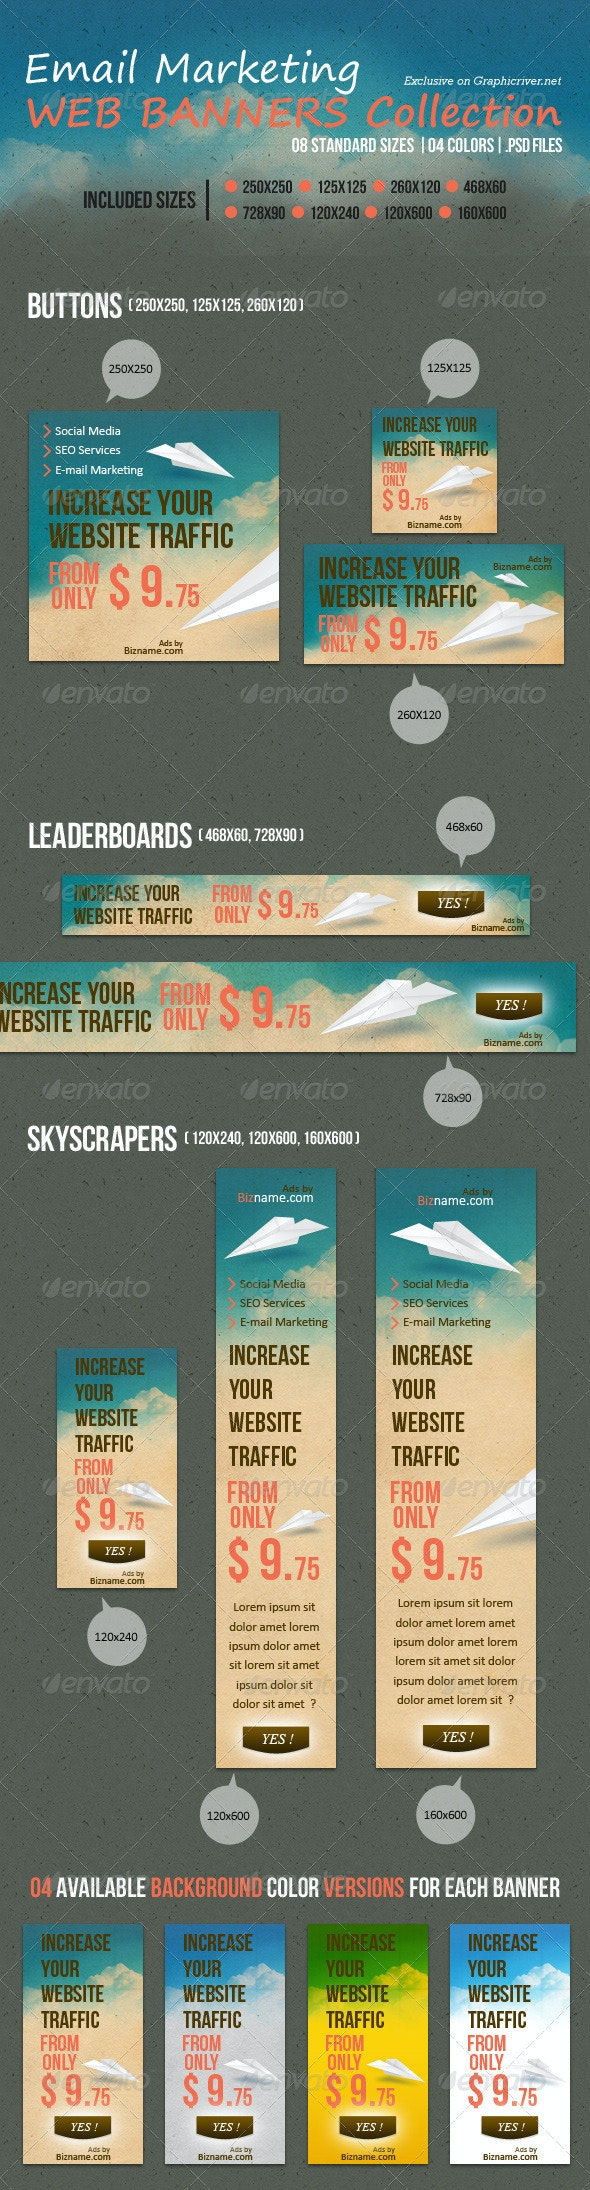 Email Marketing Web Banners Collection - Banners & Ads Web Elements